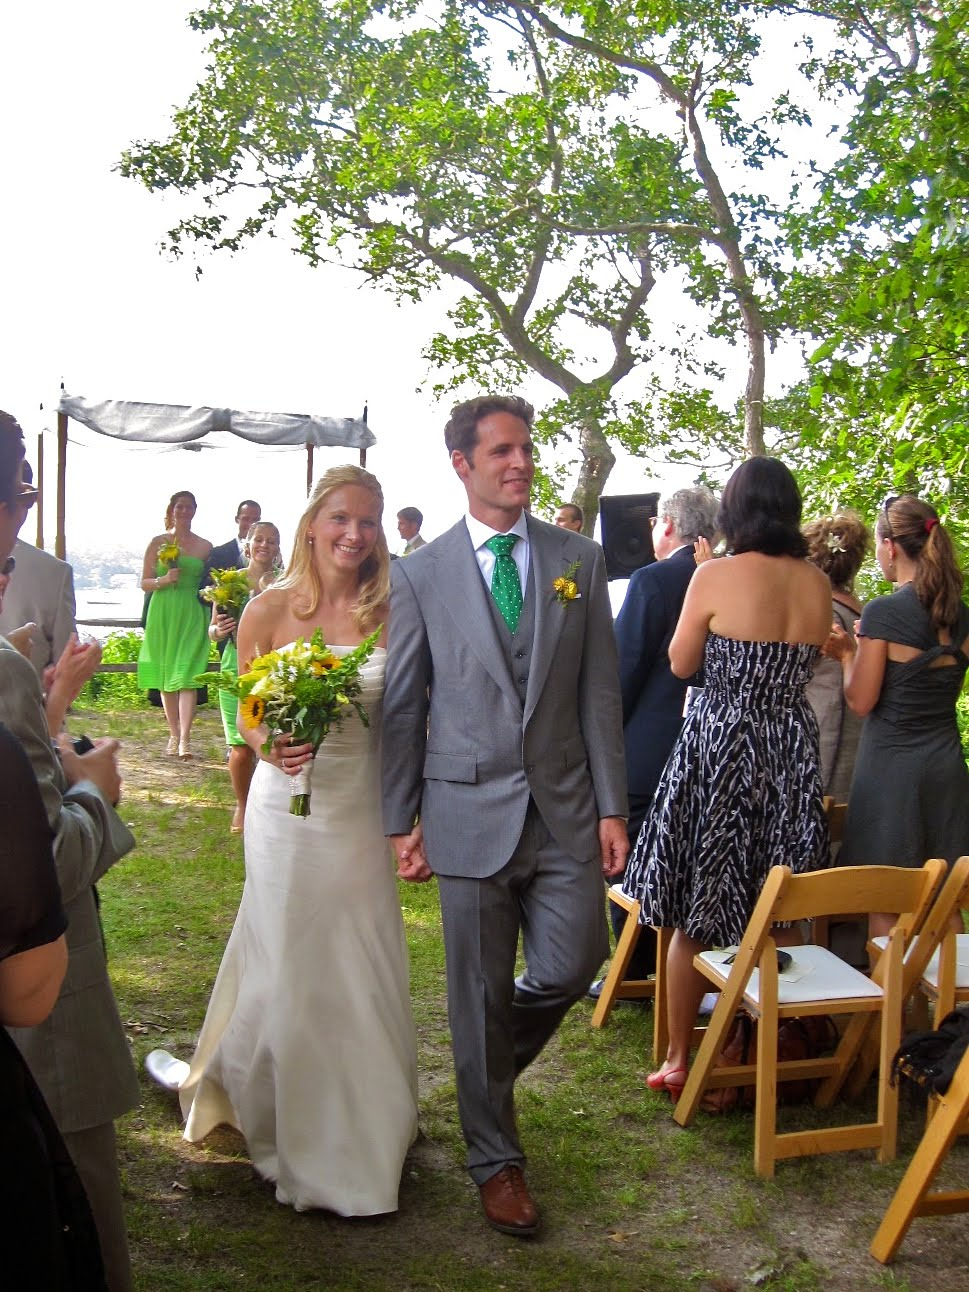 Live creating yourself marthas vineyard wedding style bridesmaids went the jew route all wearing different styles in the same color groomsmen were told to wear a suit and had matching ties ombrellifo Images